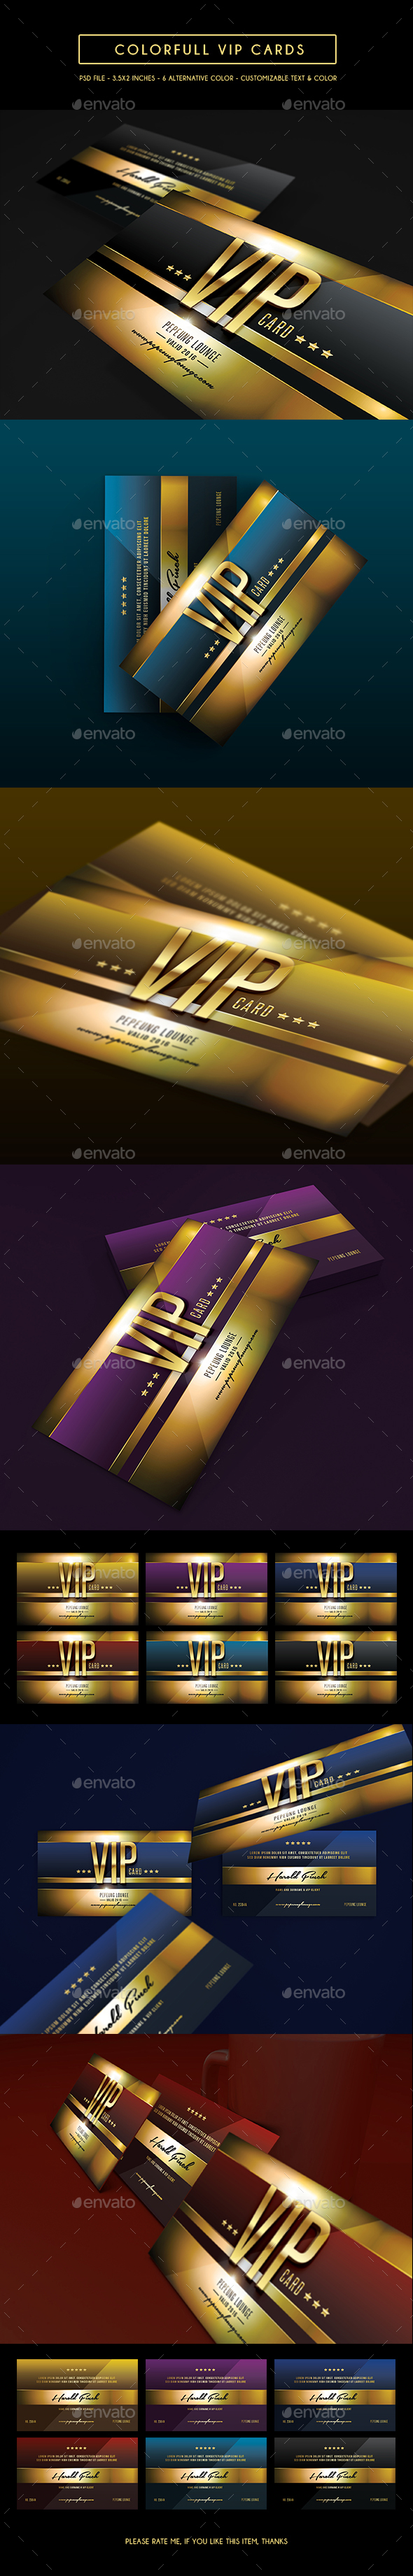 Multipurpose Colorfull Vip Card - Business Cards Print Templates